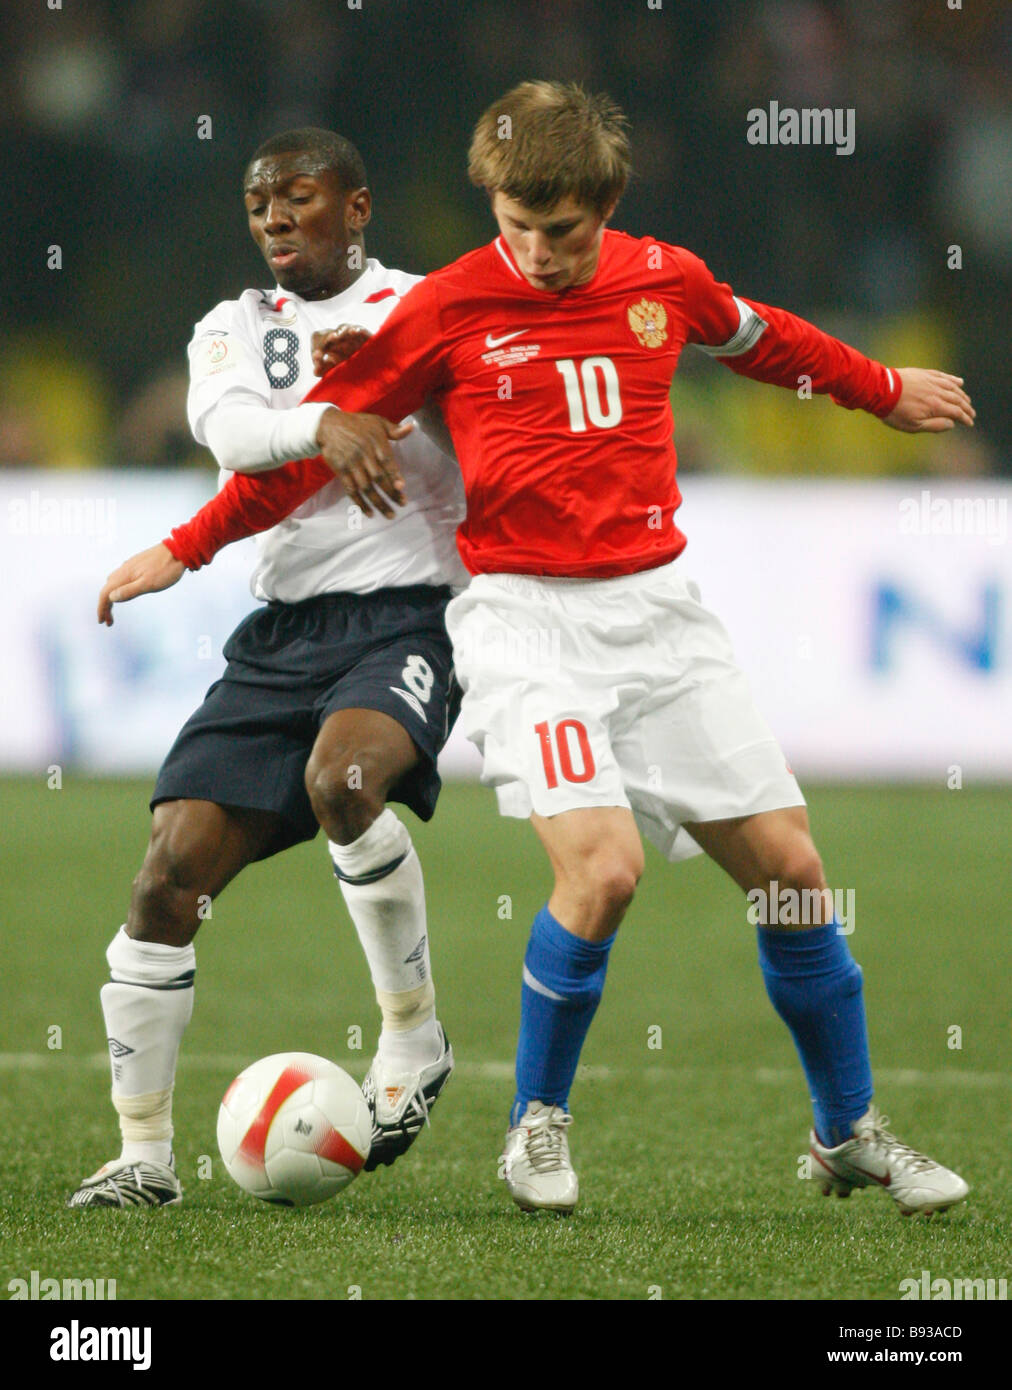 Shaun Wright Phillips of England and Andrey Arshavin of Russia from left to right during the England Russia football - Stock Image